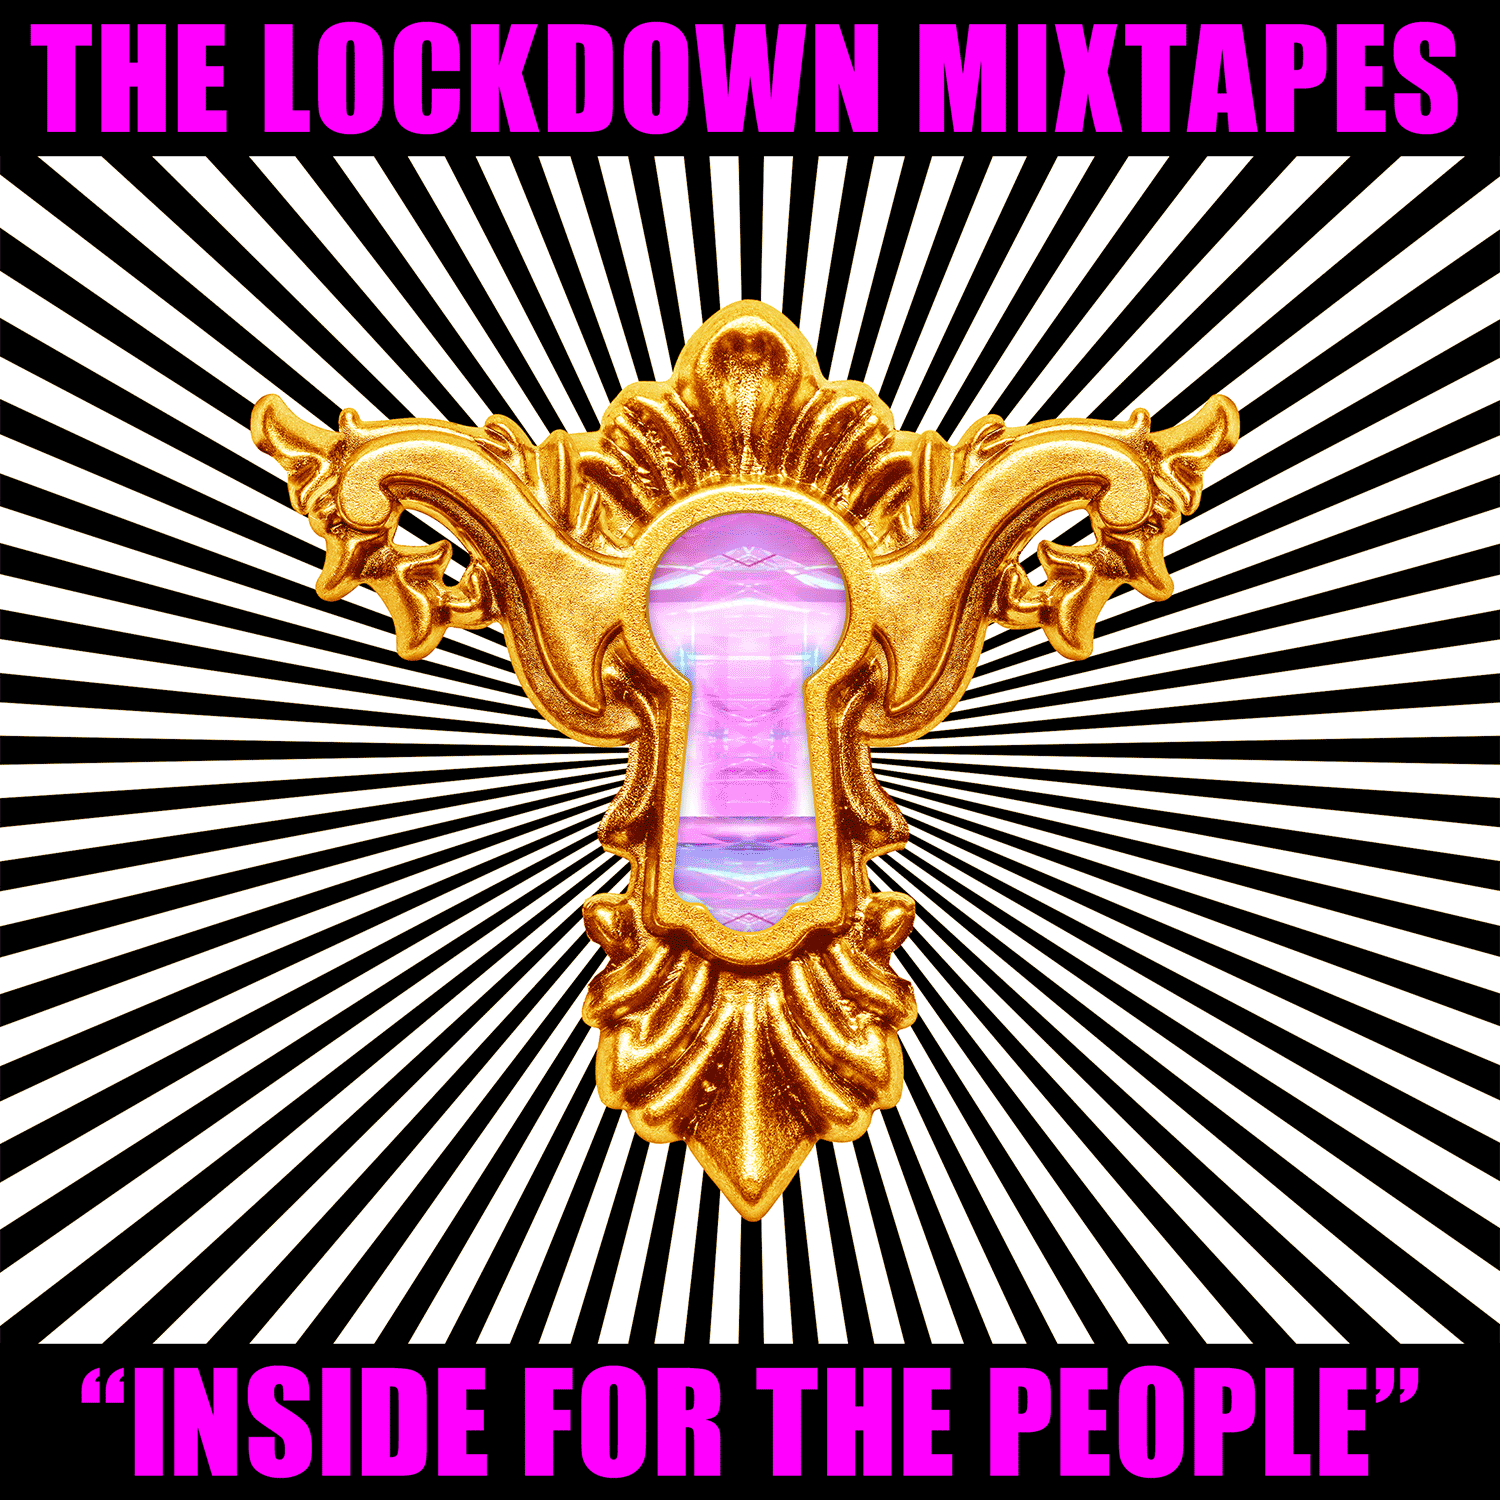 Bassnectar-The-Lockdown-Mixtapes-Inside-For-The-People